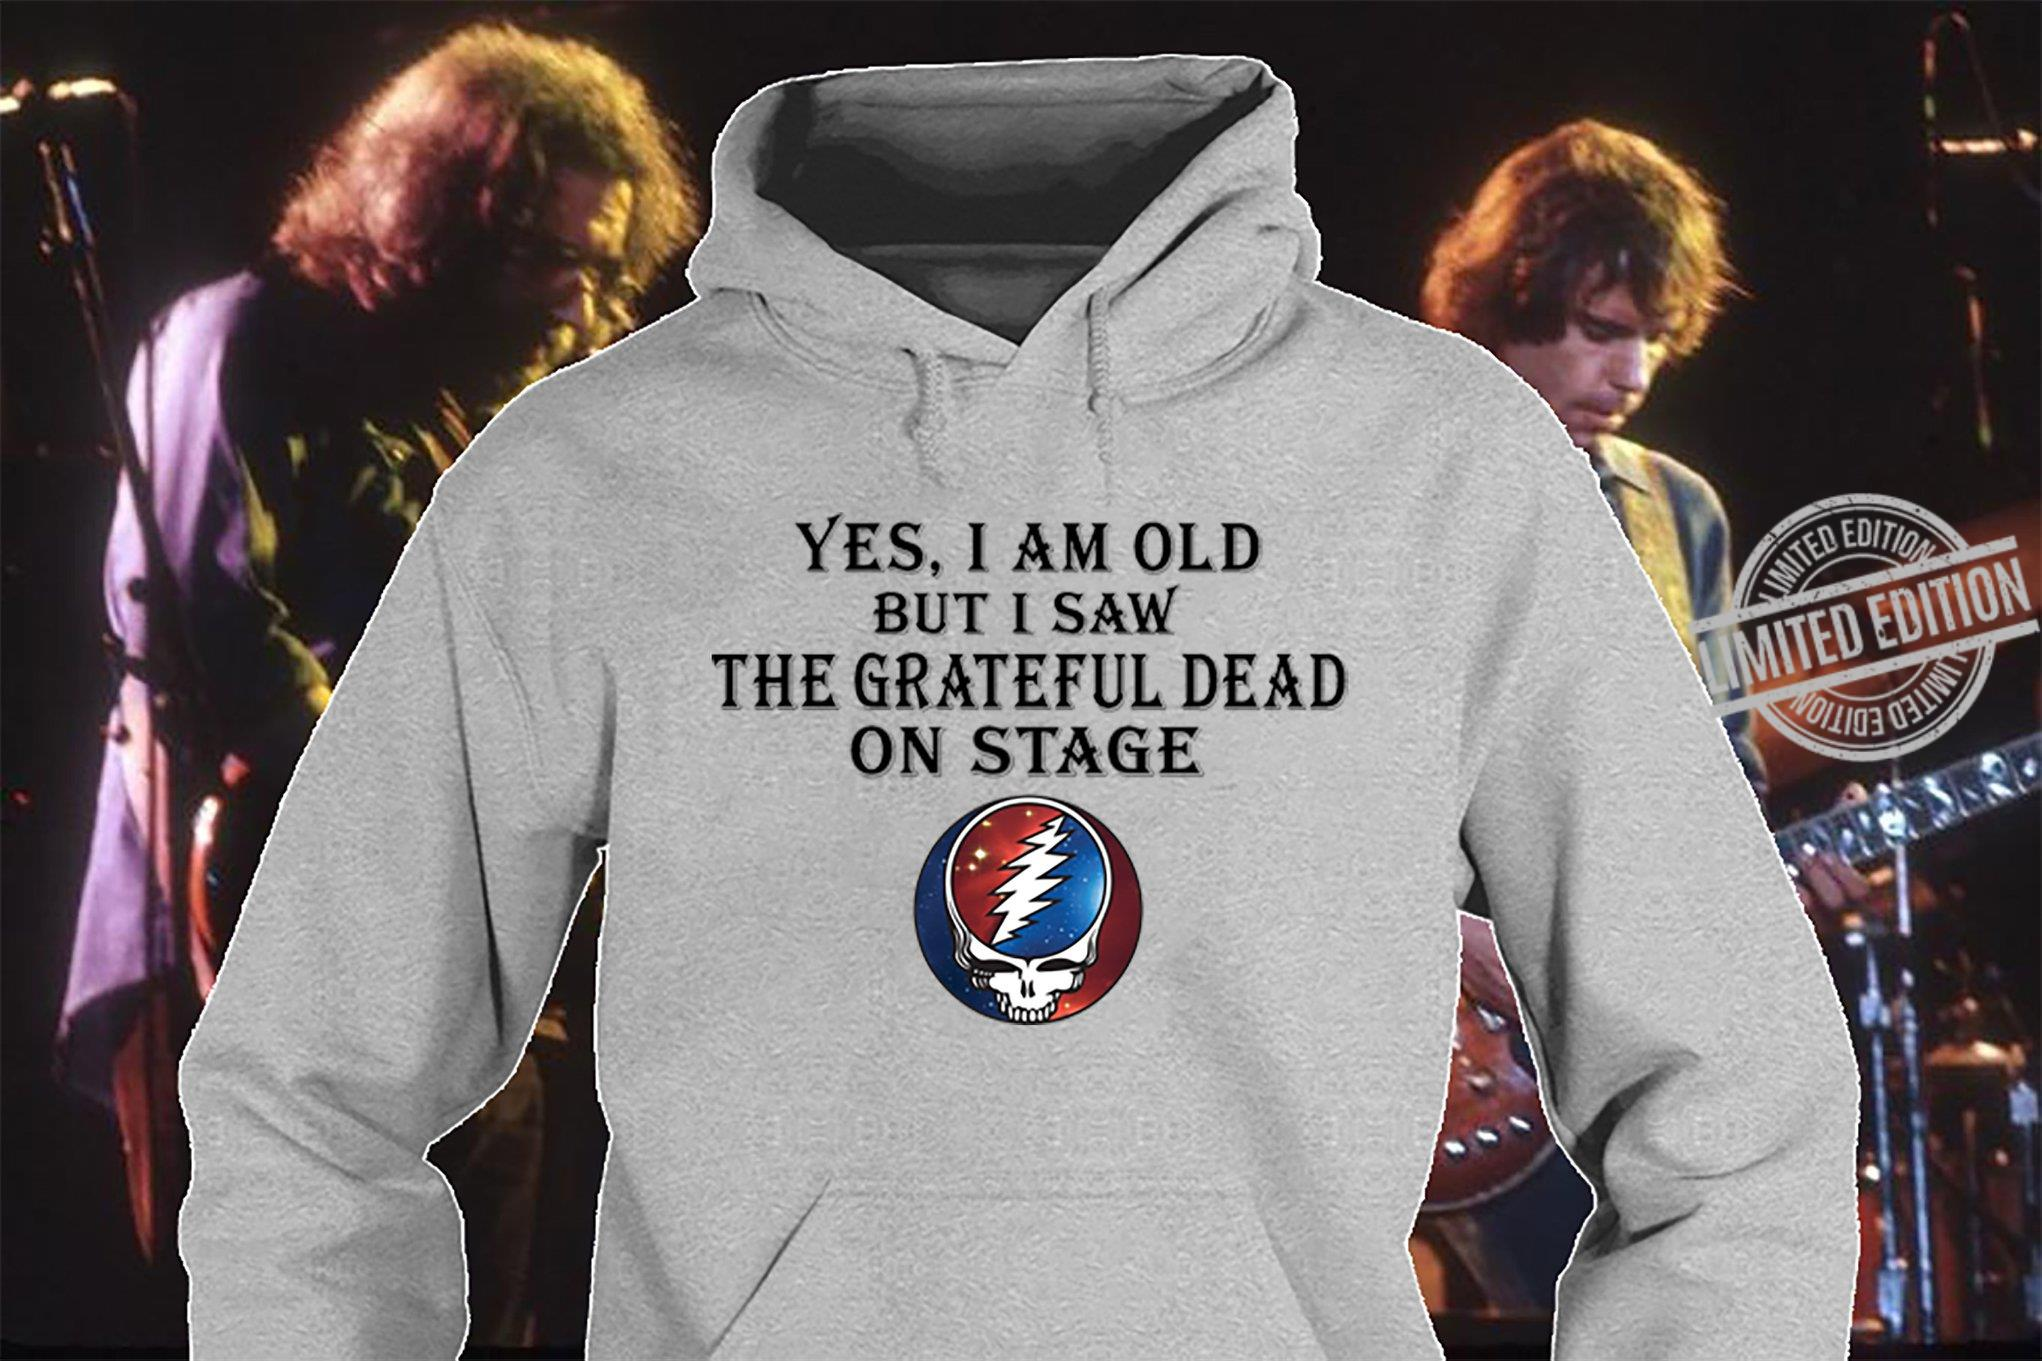 Yes, I Am Old But I Saw the Grateful Dead On Stage Sweatshirt